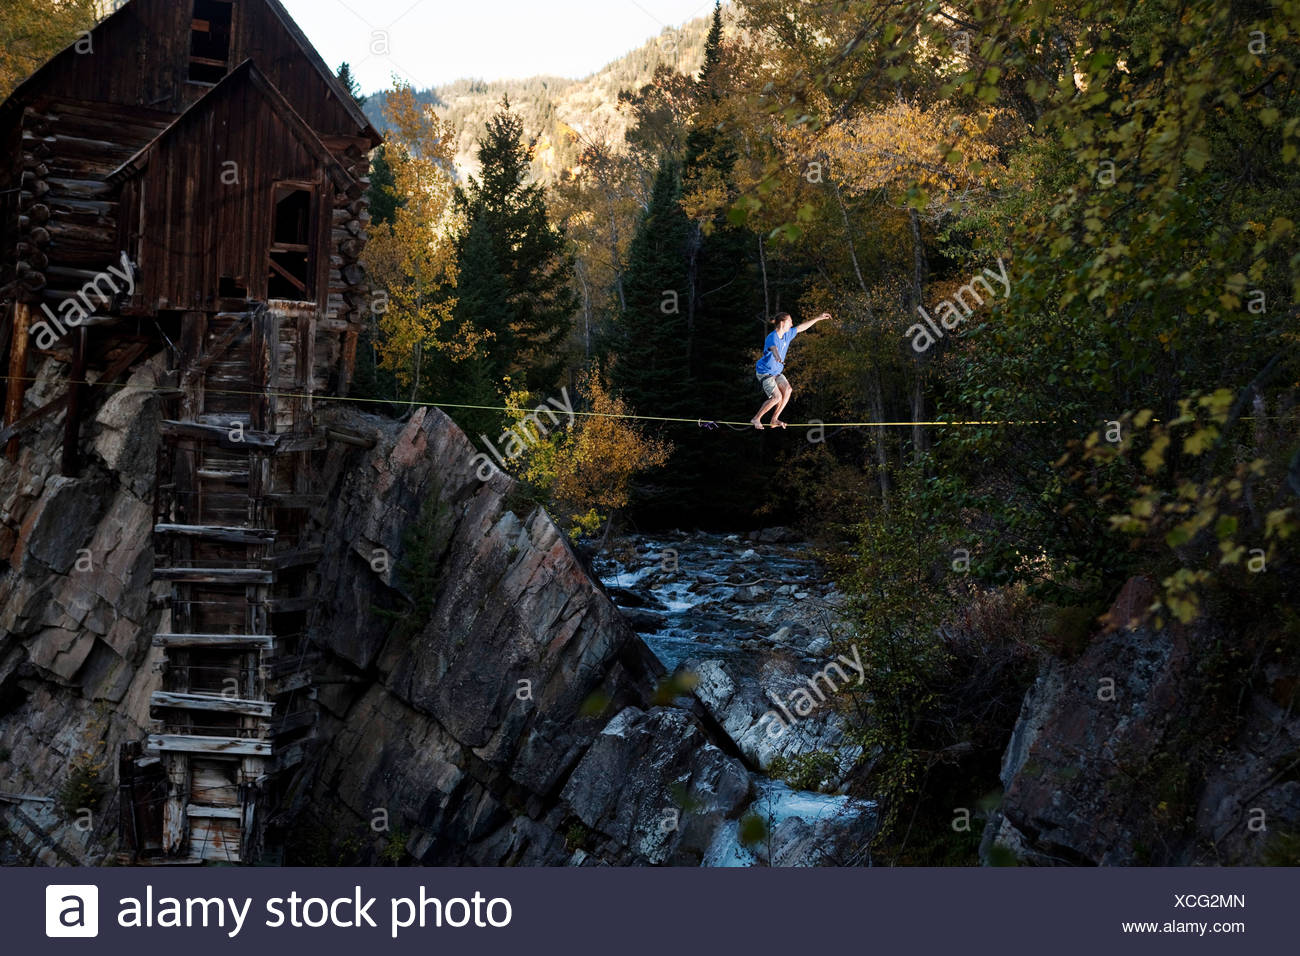 A young man walks a high line with glowing leaves and a raging river below. - Stock Image